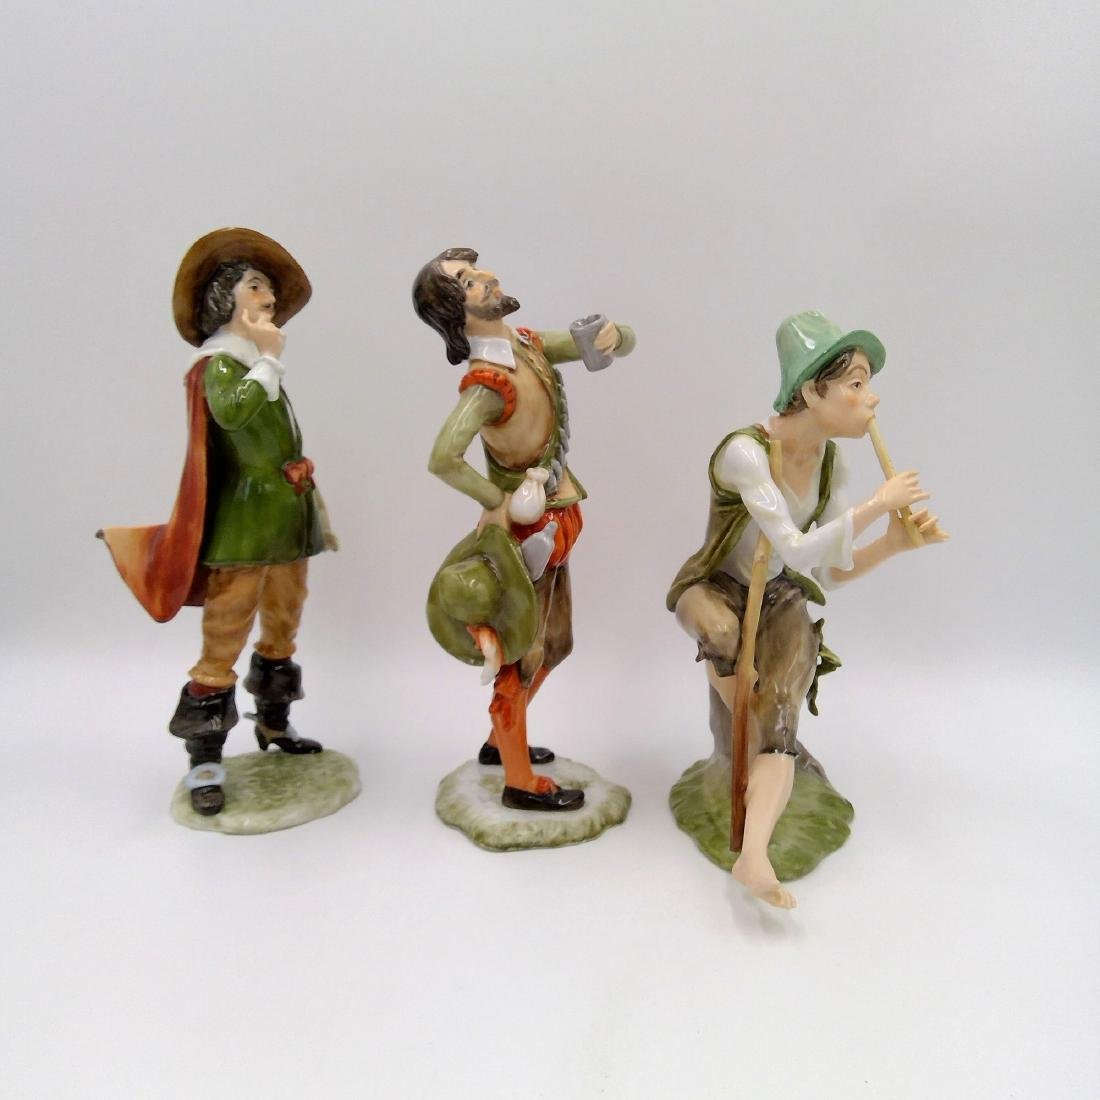 GROUP OF 3 KAISER GERMAN PORCELAIN FIGURINES - 4